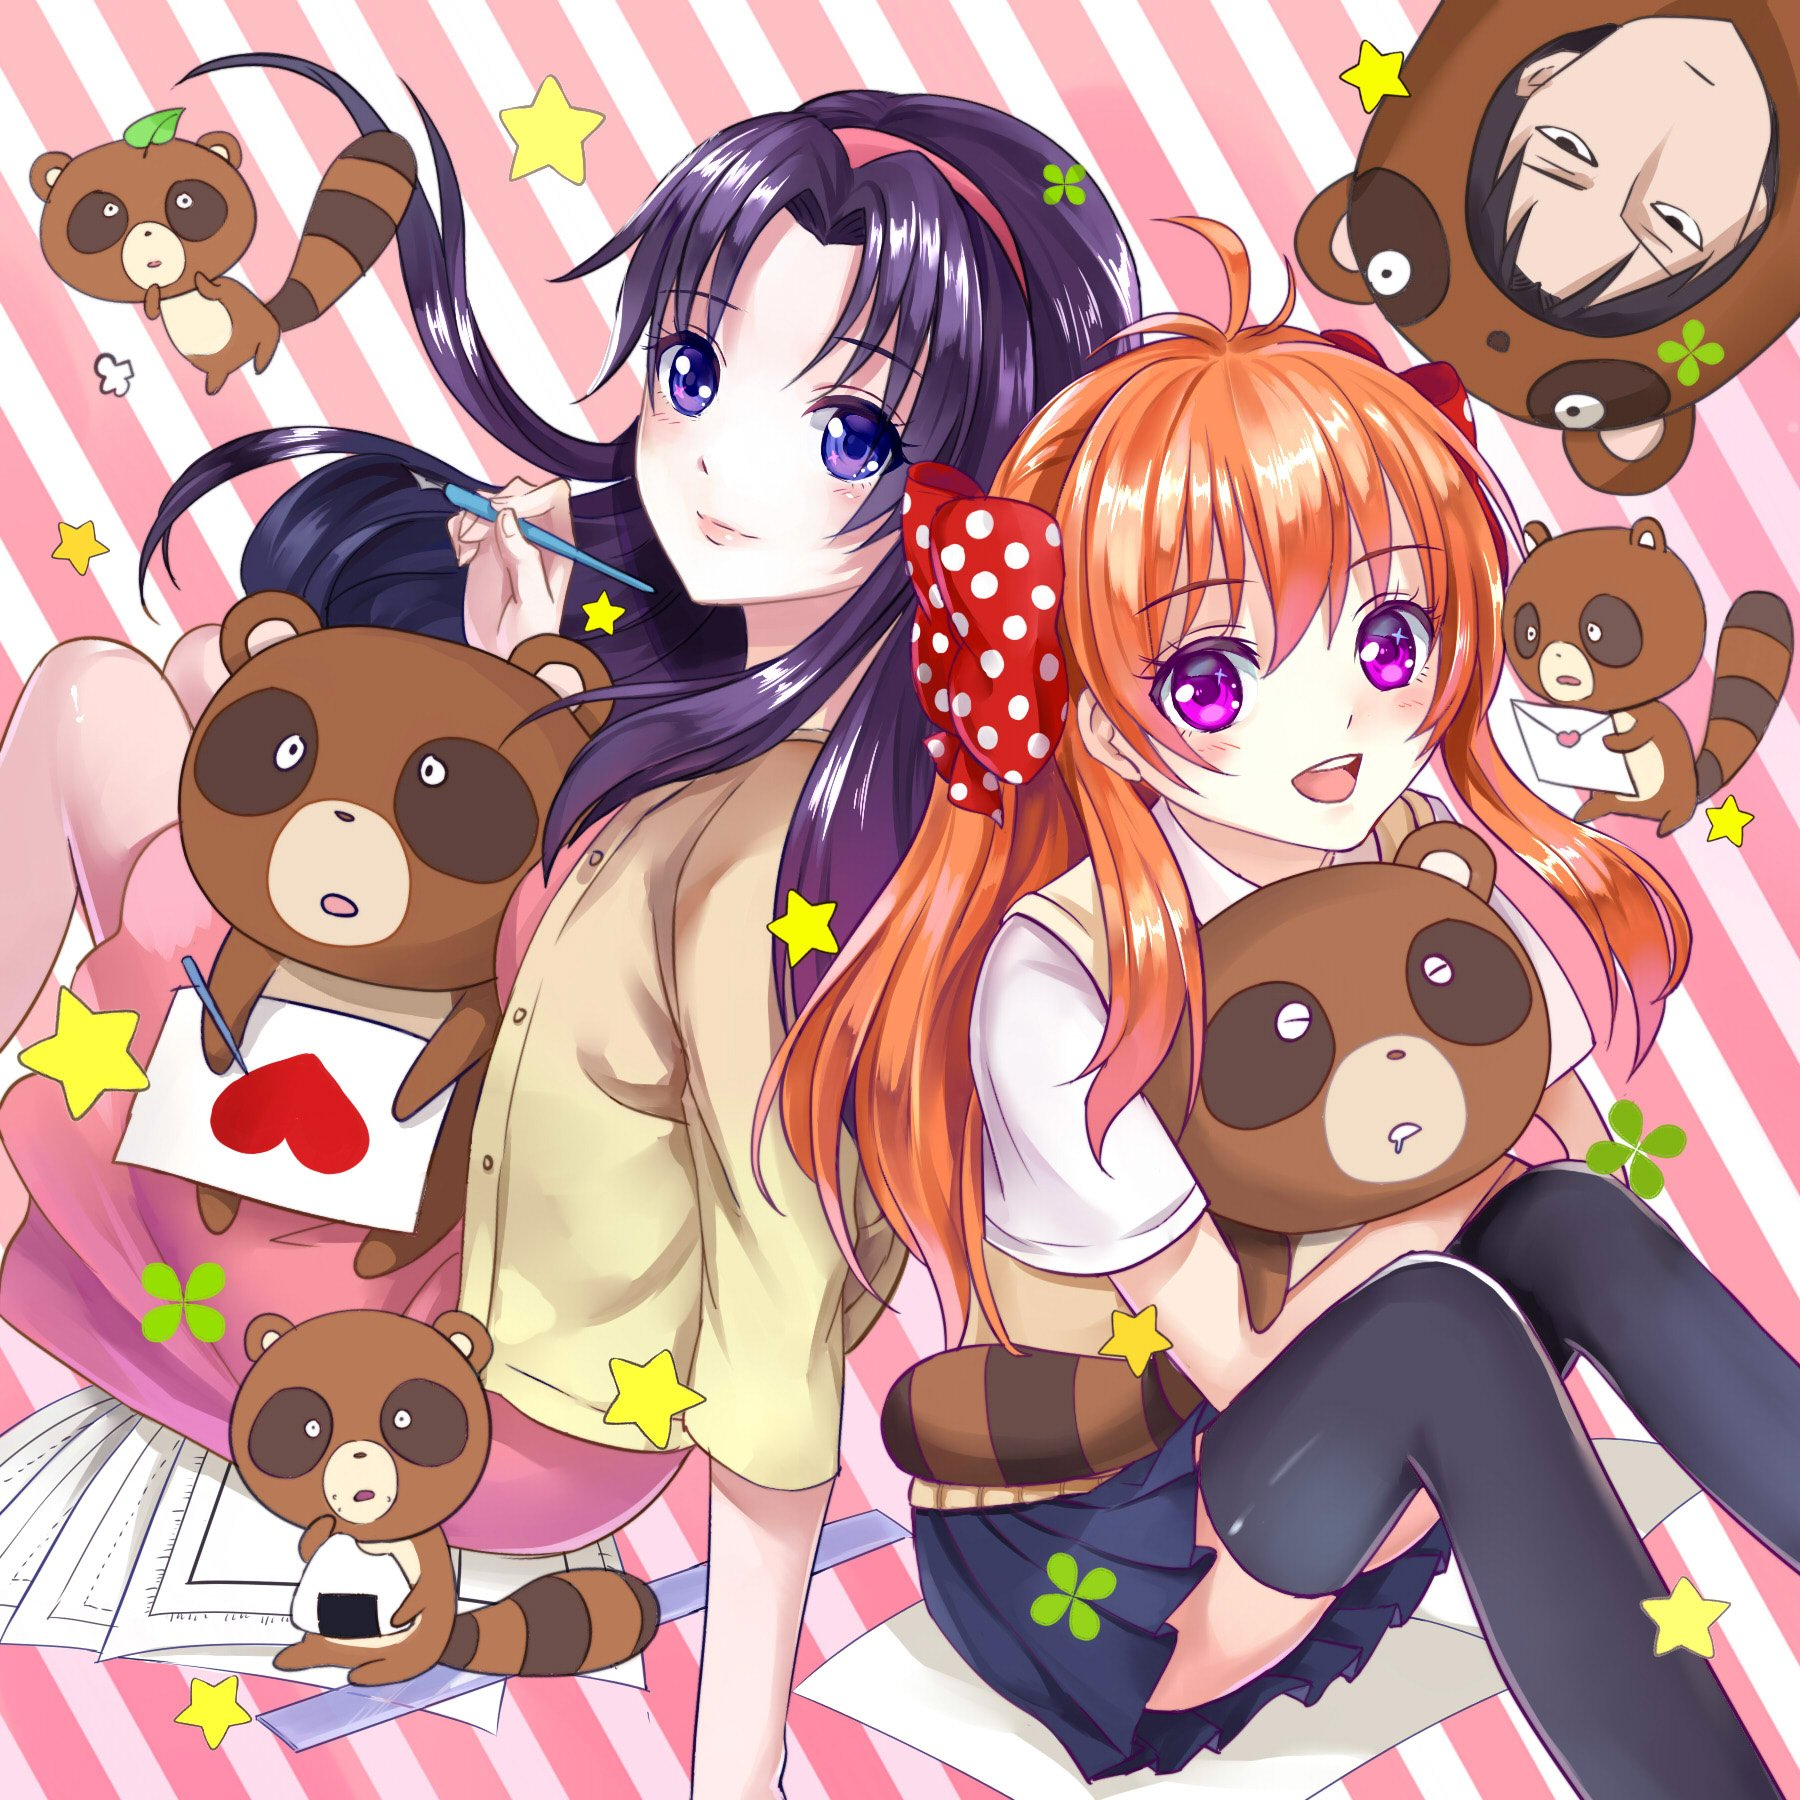 Anime Wallpaper Cute Gif Chiyo Blush Gekkan Shoujo Nozaki Kun Sakura Nozaki Long